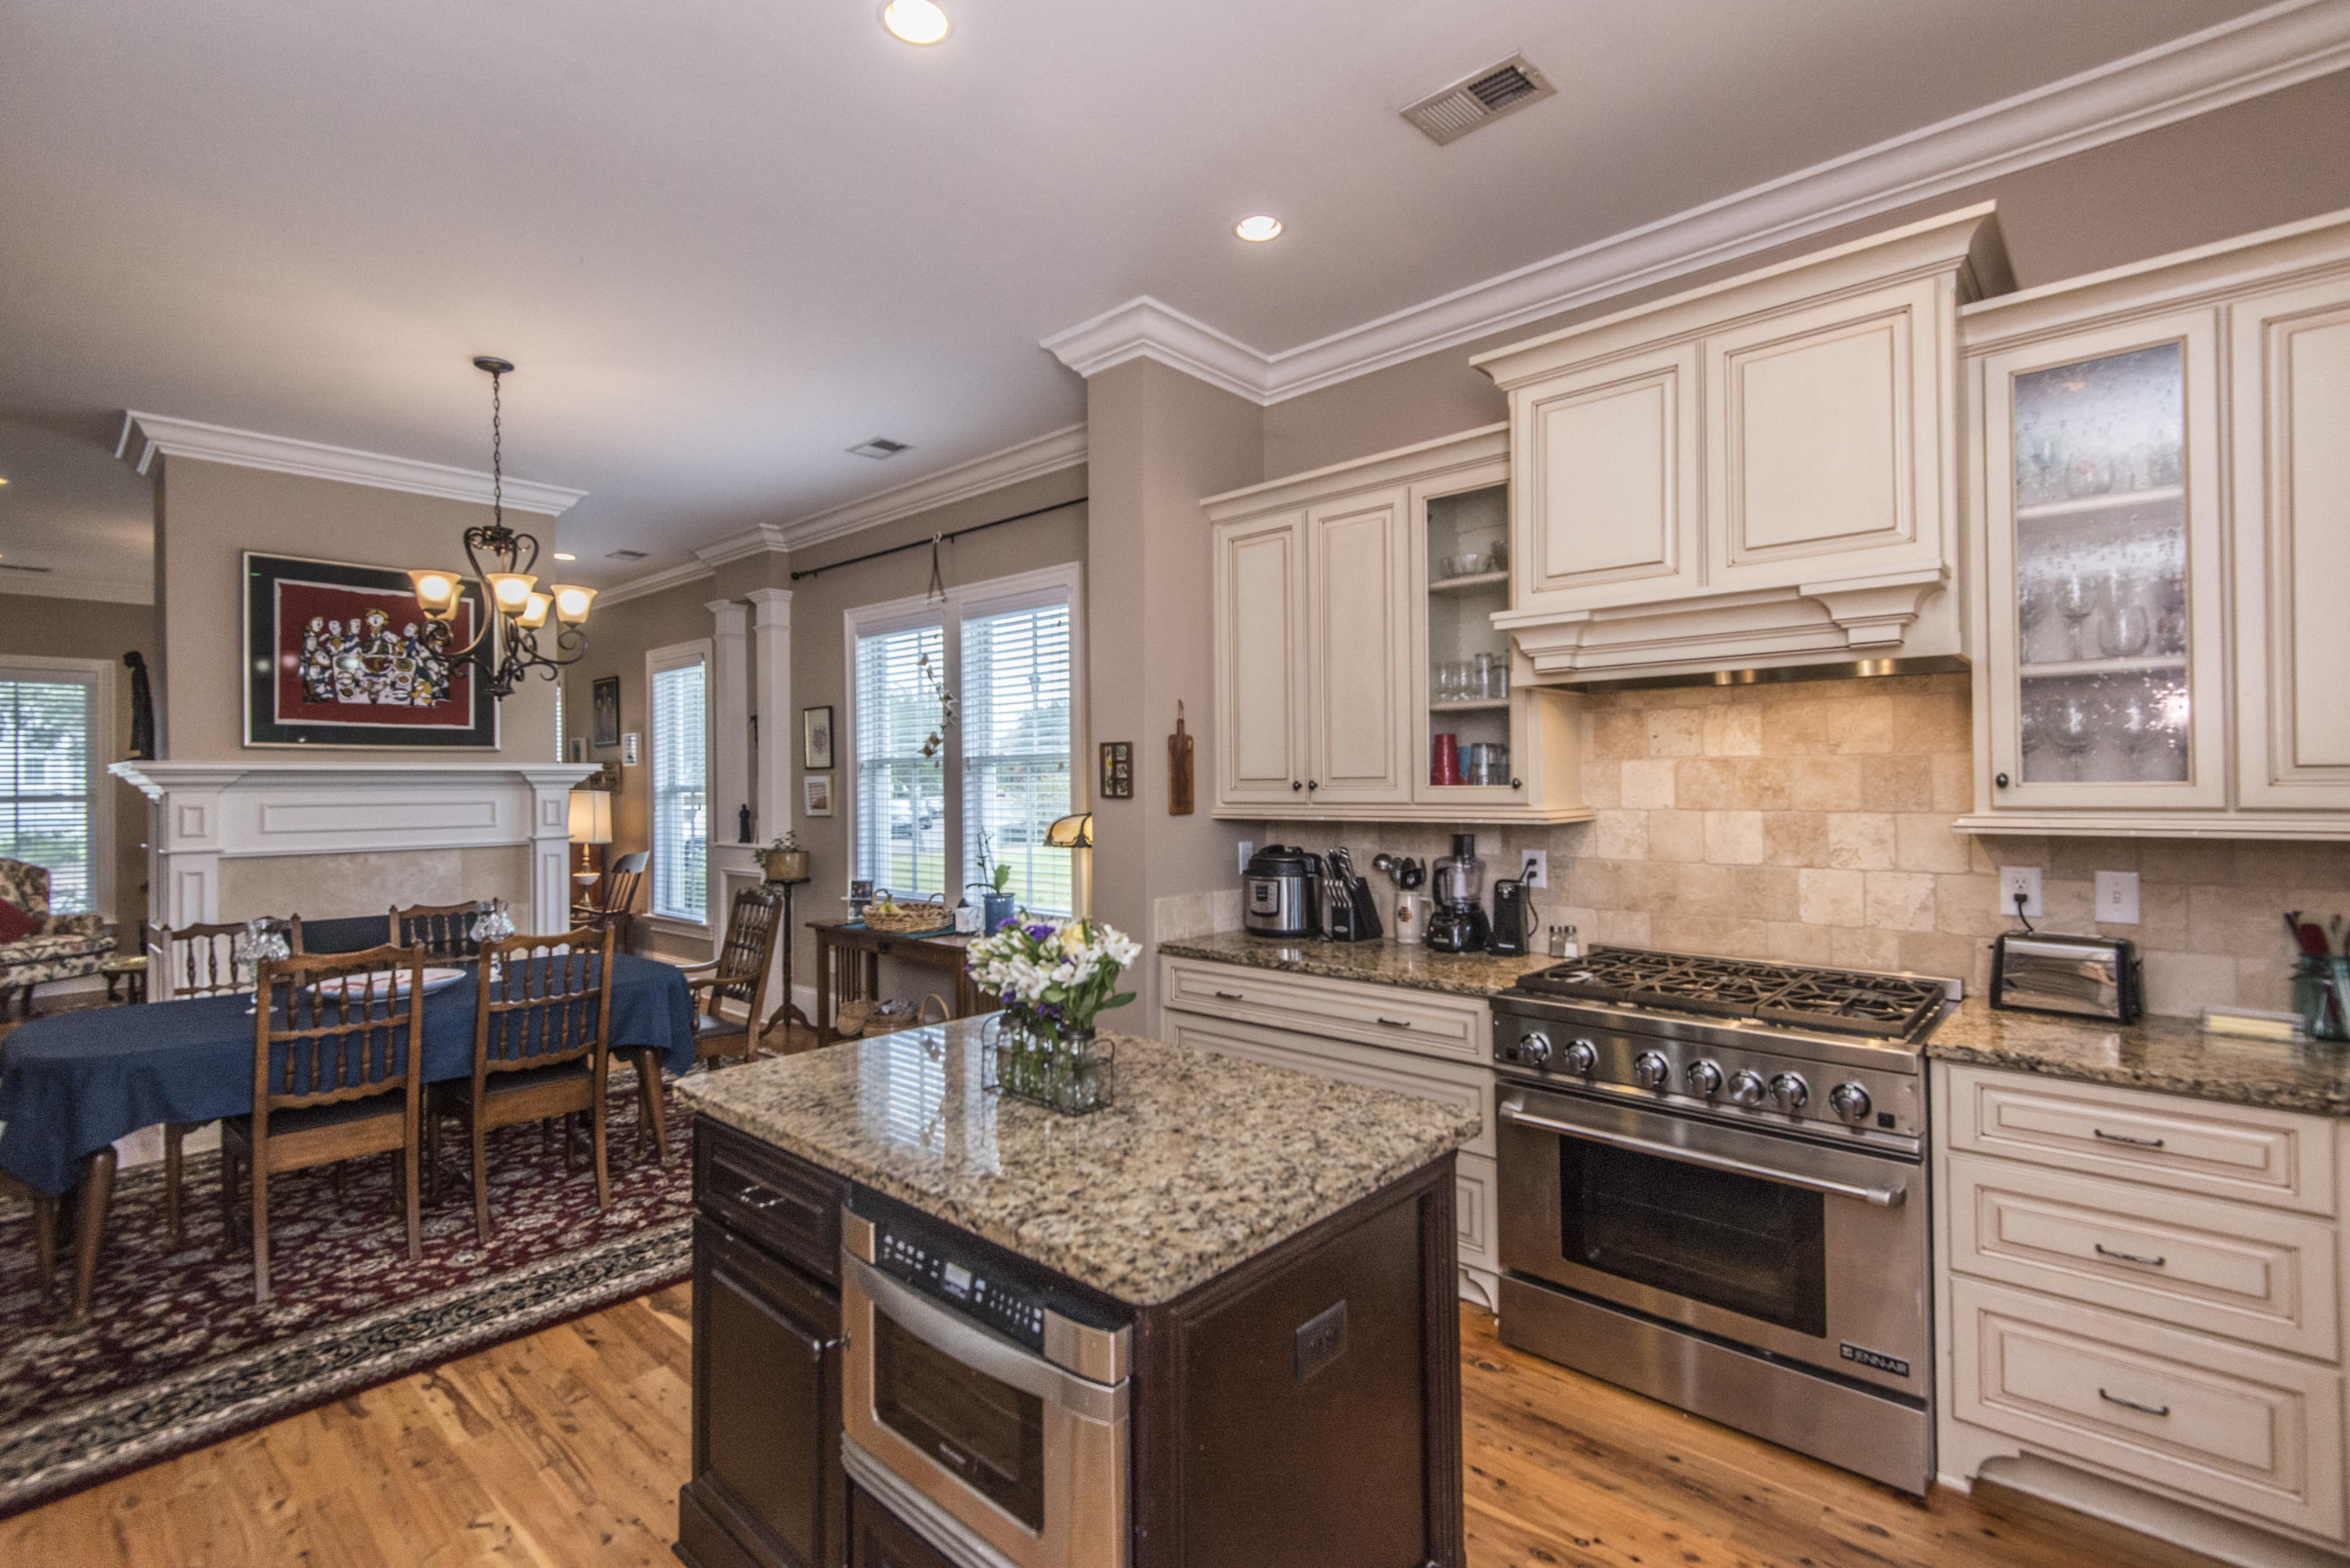 Watermark Homes For Sale - 1332 Penshell Place, Mount Pleasant, SC - 107